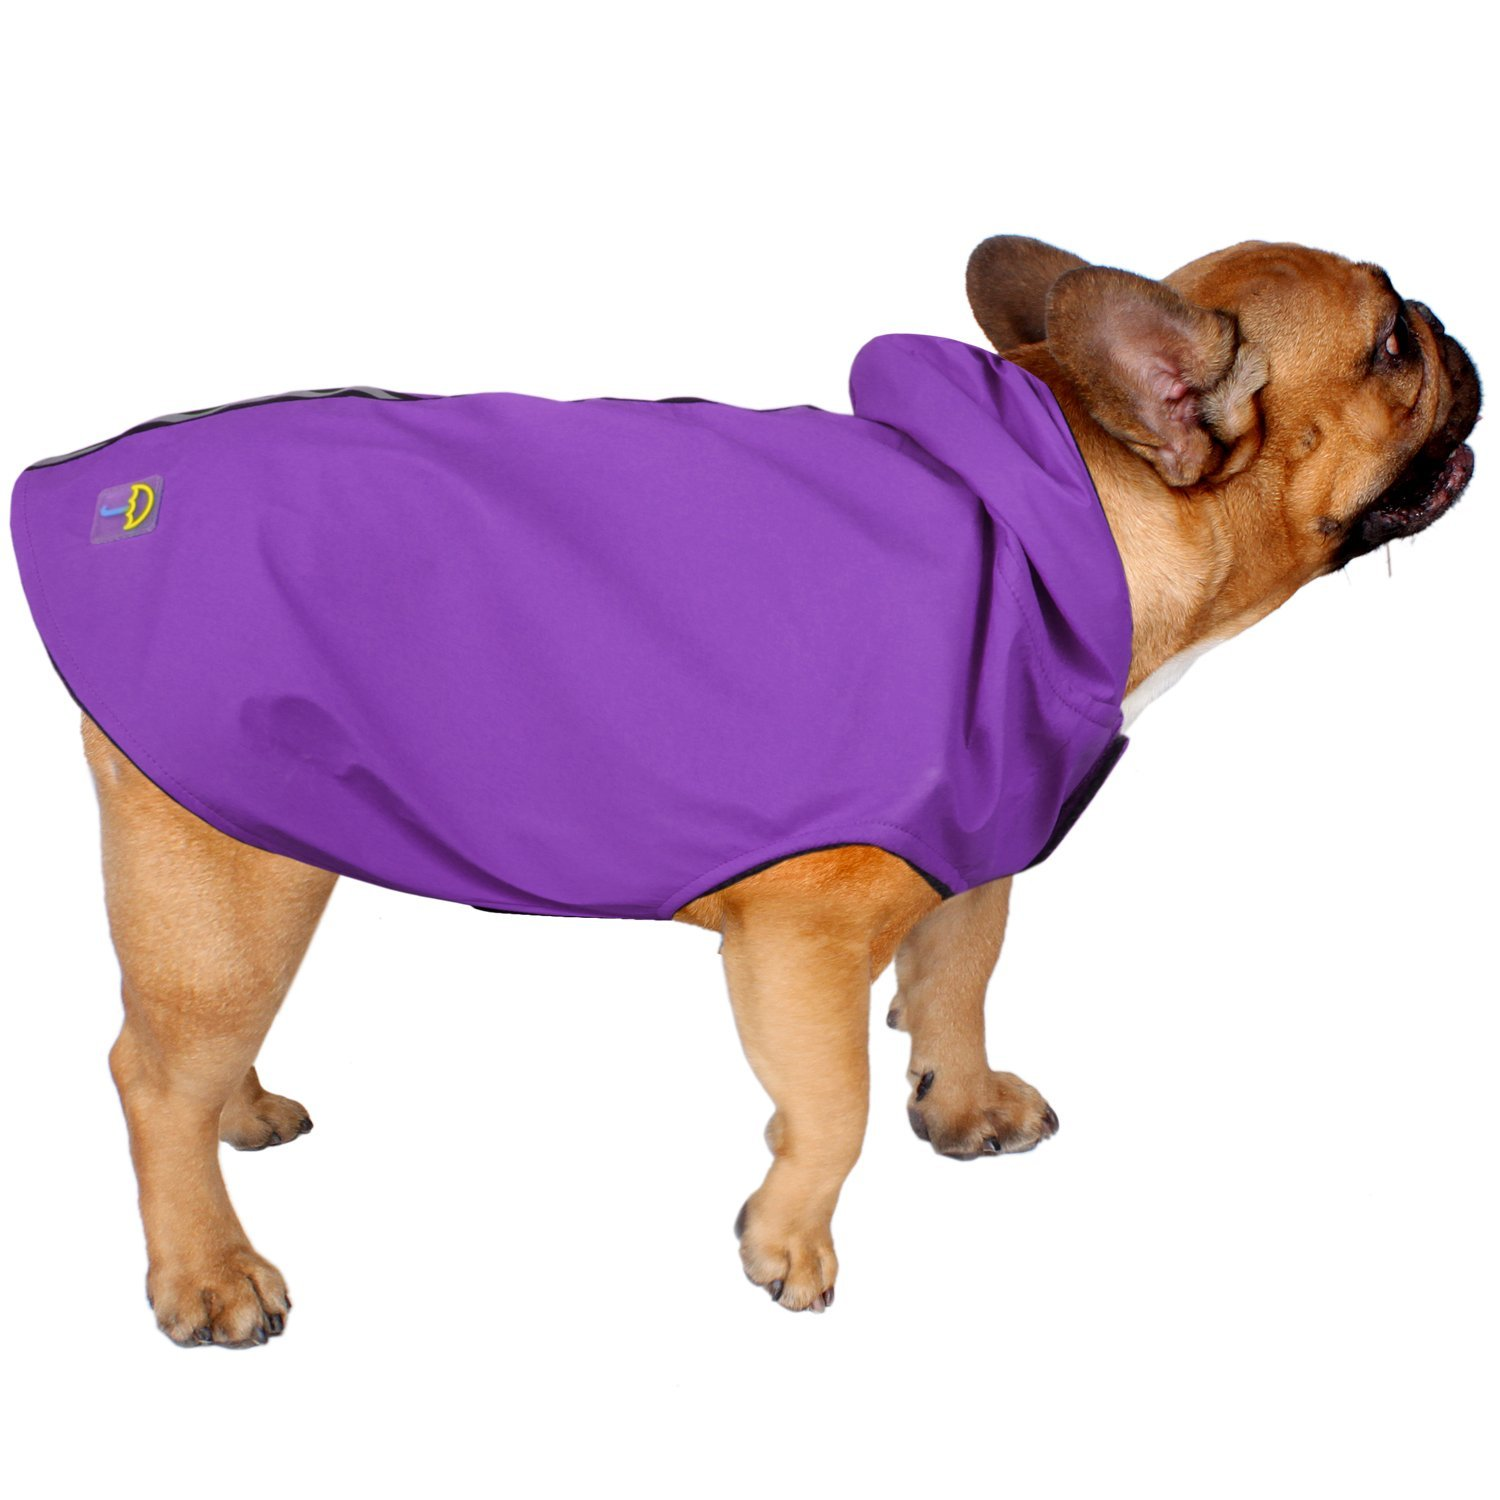 jelly-wellies-premium-quality-waterproof-reflective-deluxe-raincoat-for-dogs